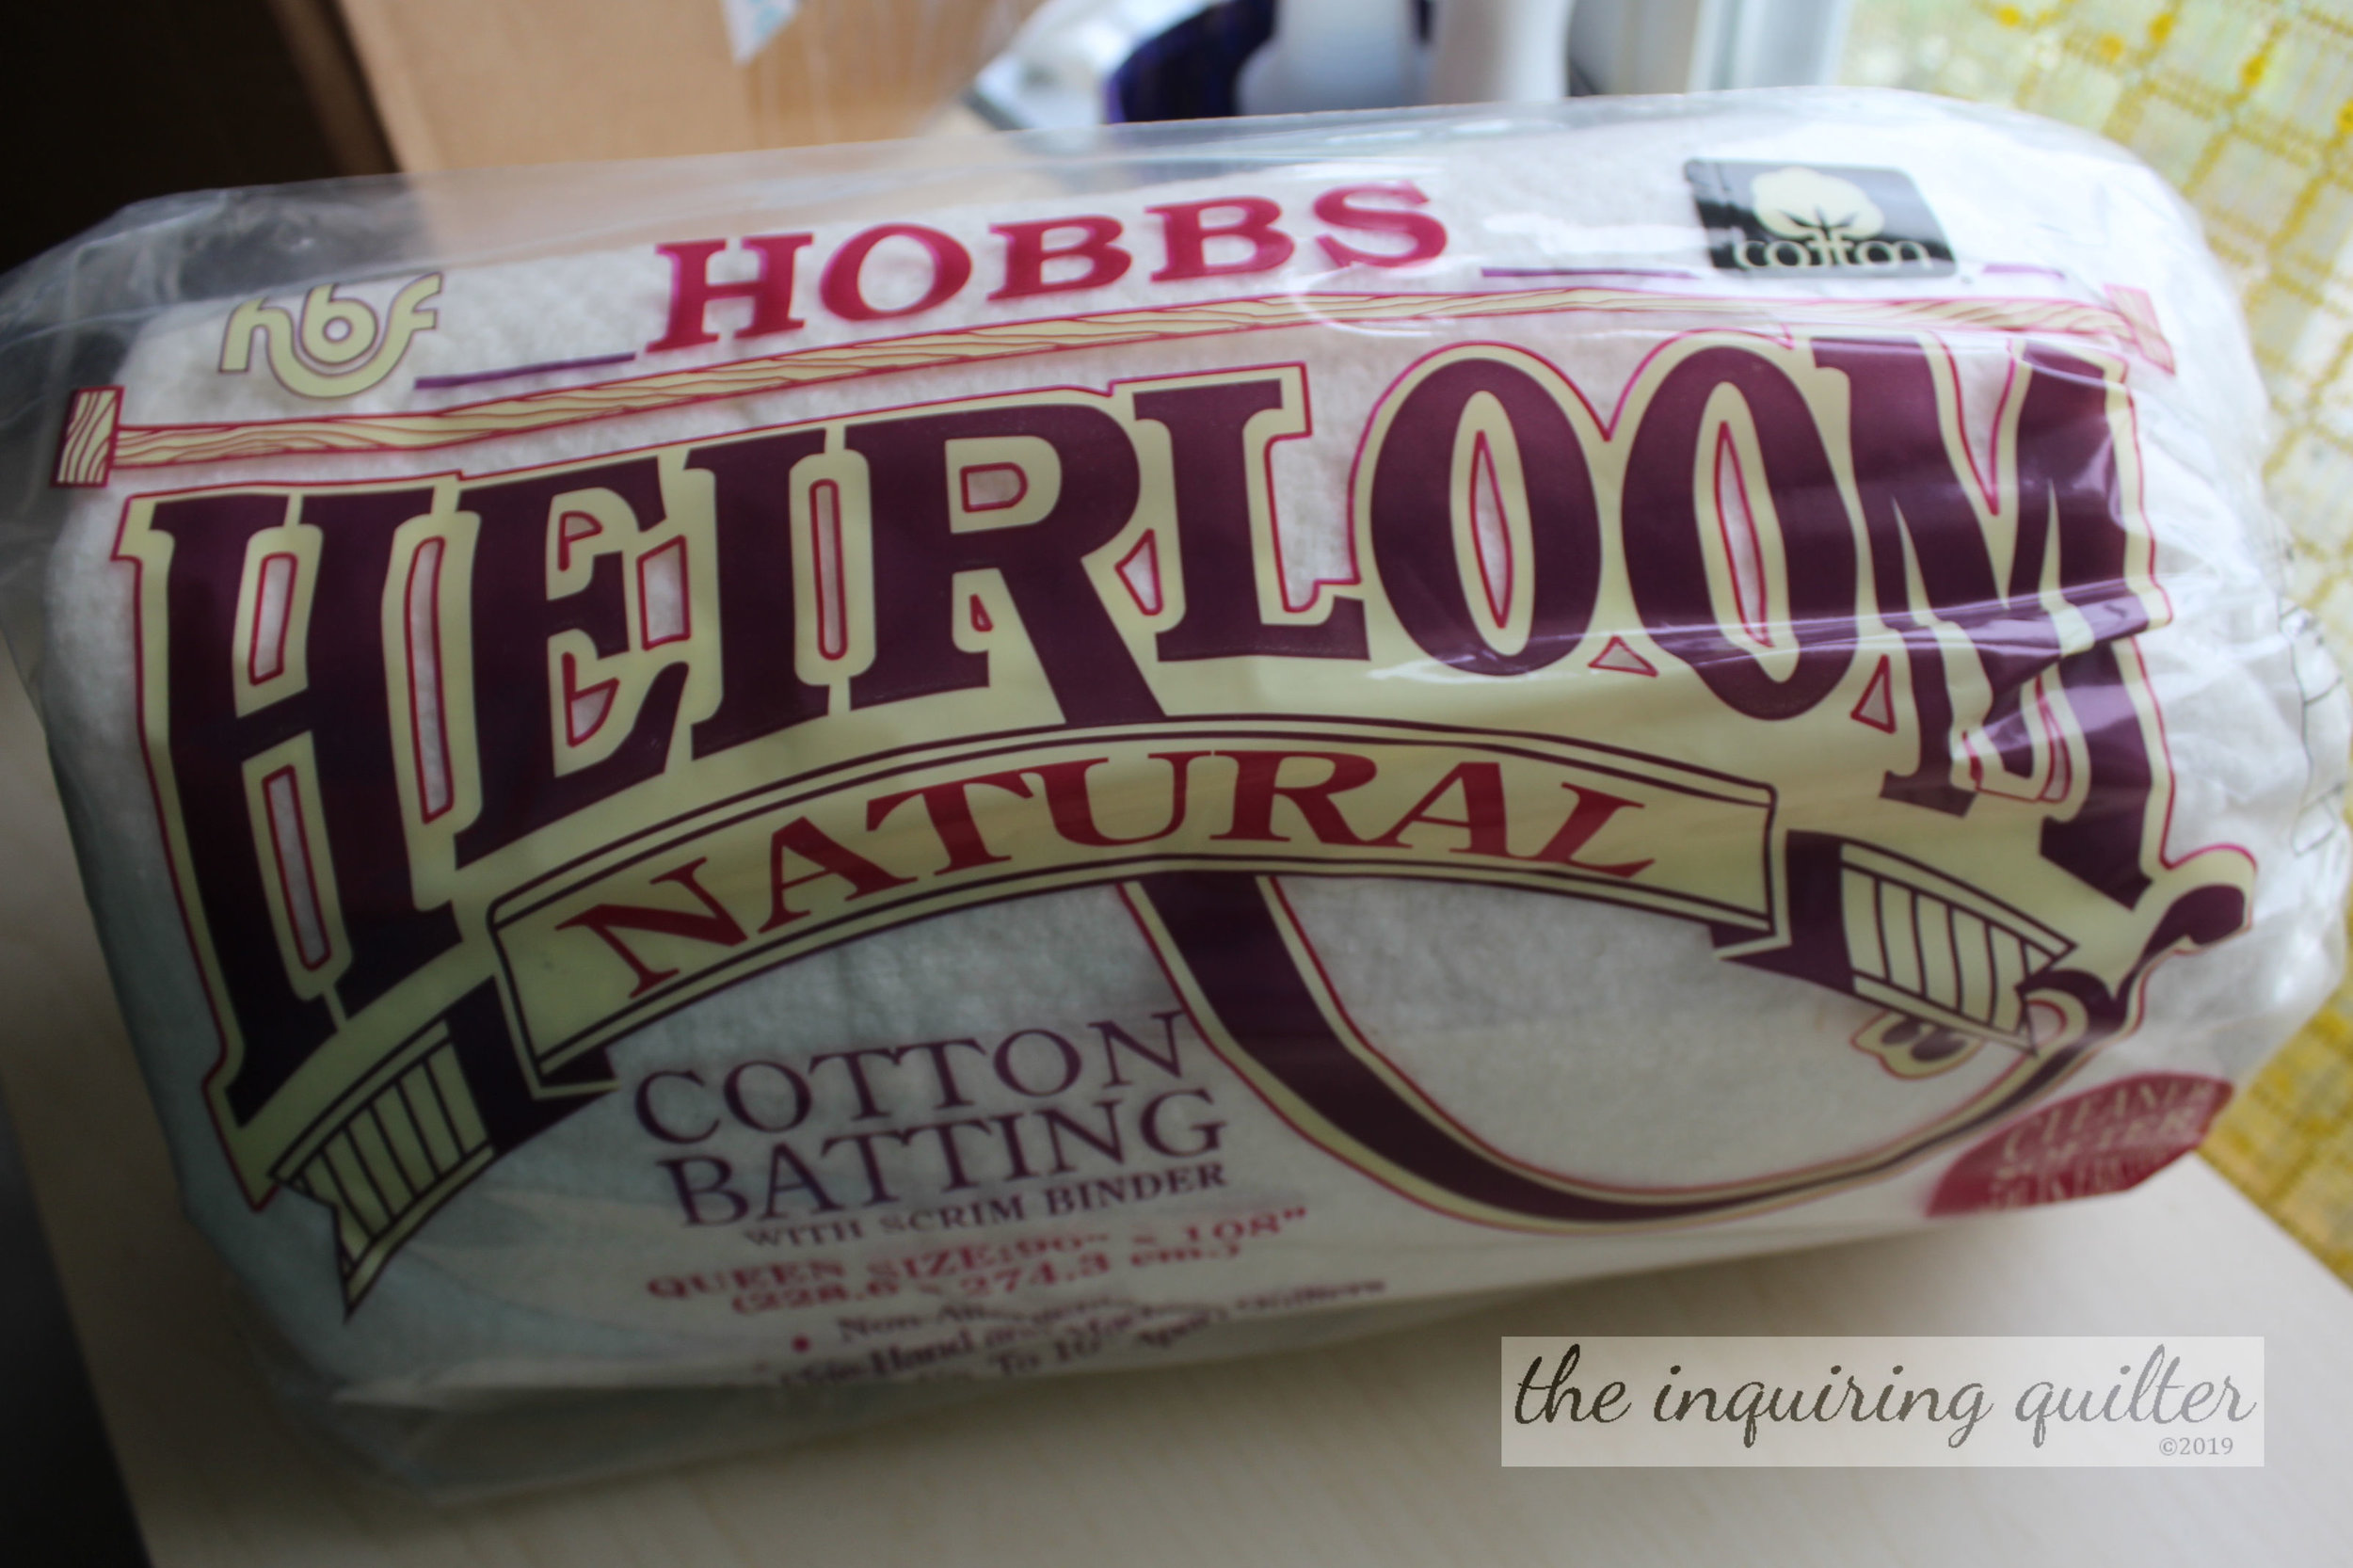 Hobbs Heirloom Cotton batting.jpg